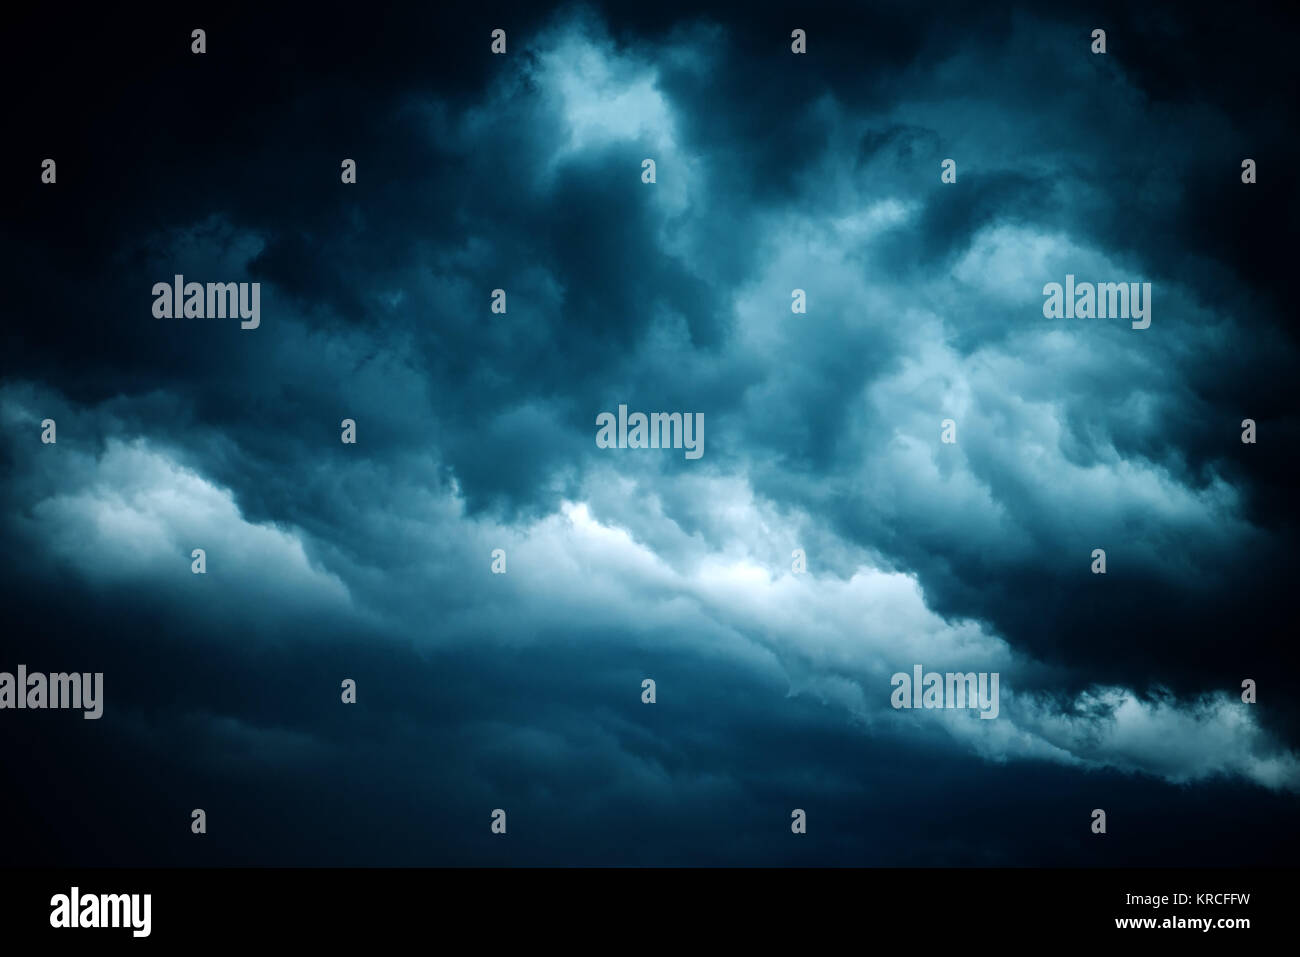 Dramatic stormy sky, dark clouds before rain. Weather, climate and meteorology background. - Stock Image